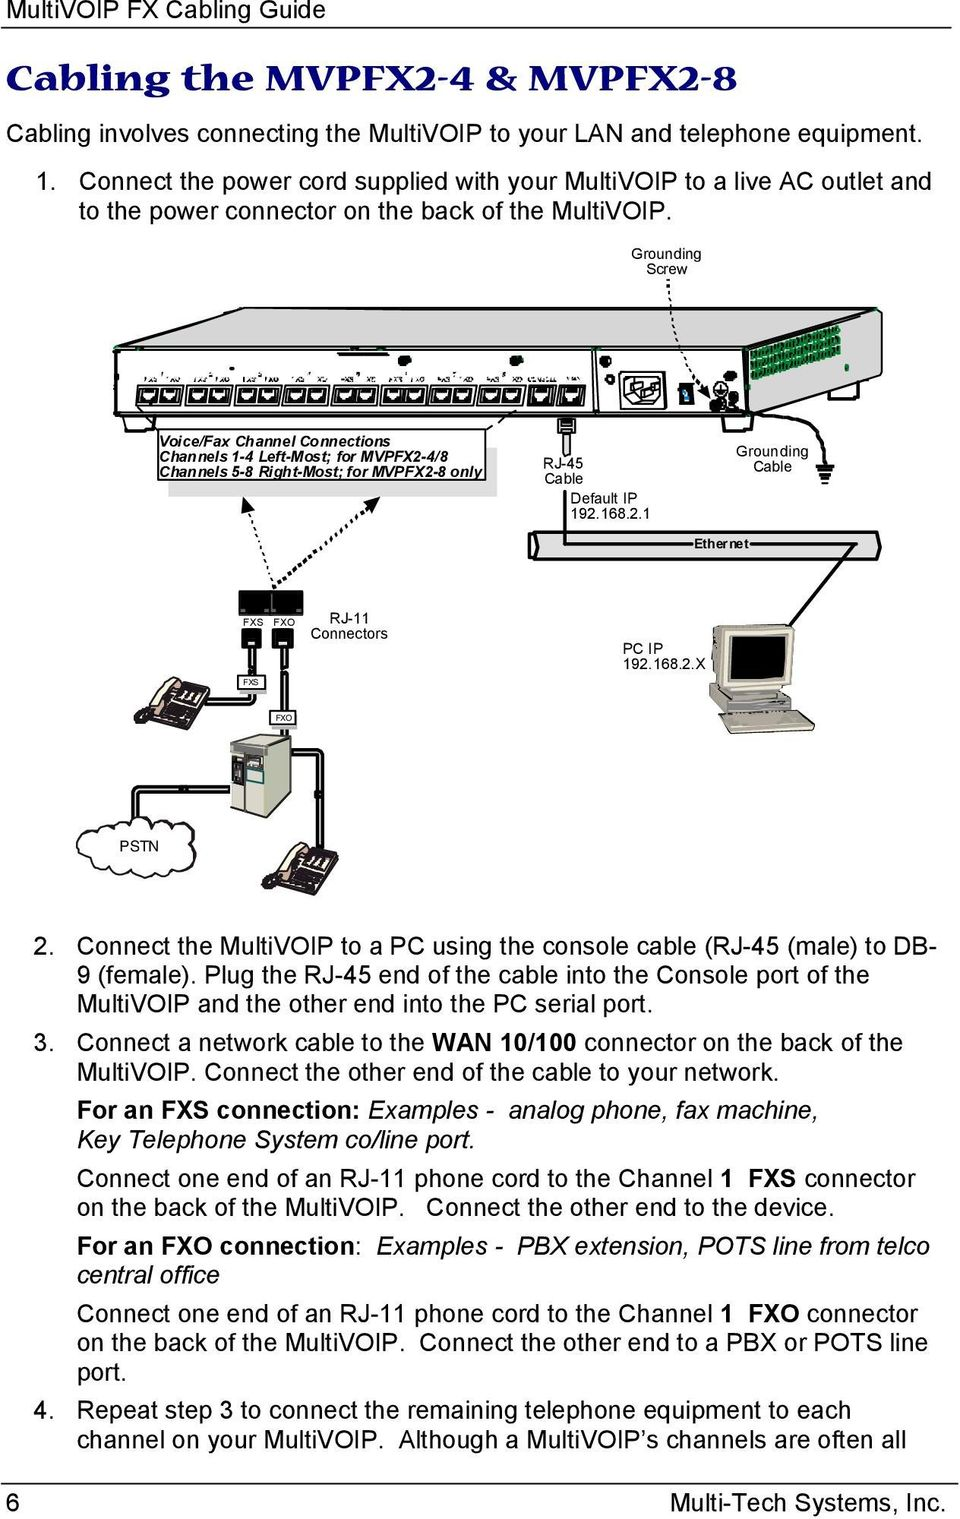 Grounding Screw Voice/Fax Channel Connections Channels 1-4 Left-Most; for MVPFX2-4/8 Channels 5-8 Right-Most; for MVPFX2-8 only RJ-45 Cable Default IP 192.168.2.1 Ether net Grounding Cable RJ-11 Connectors PC IP 192.